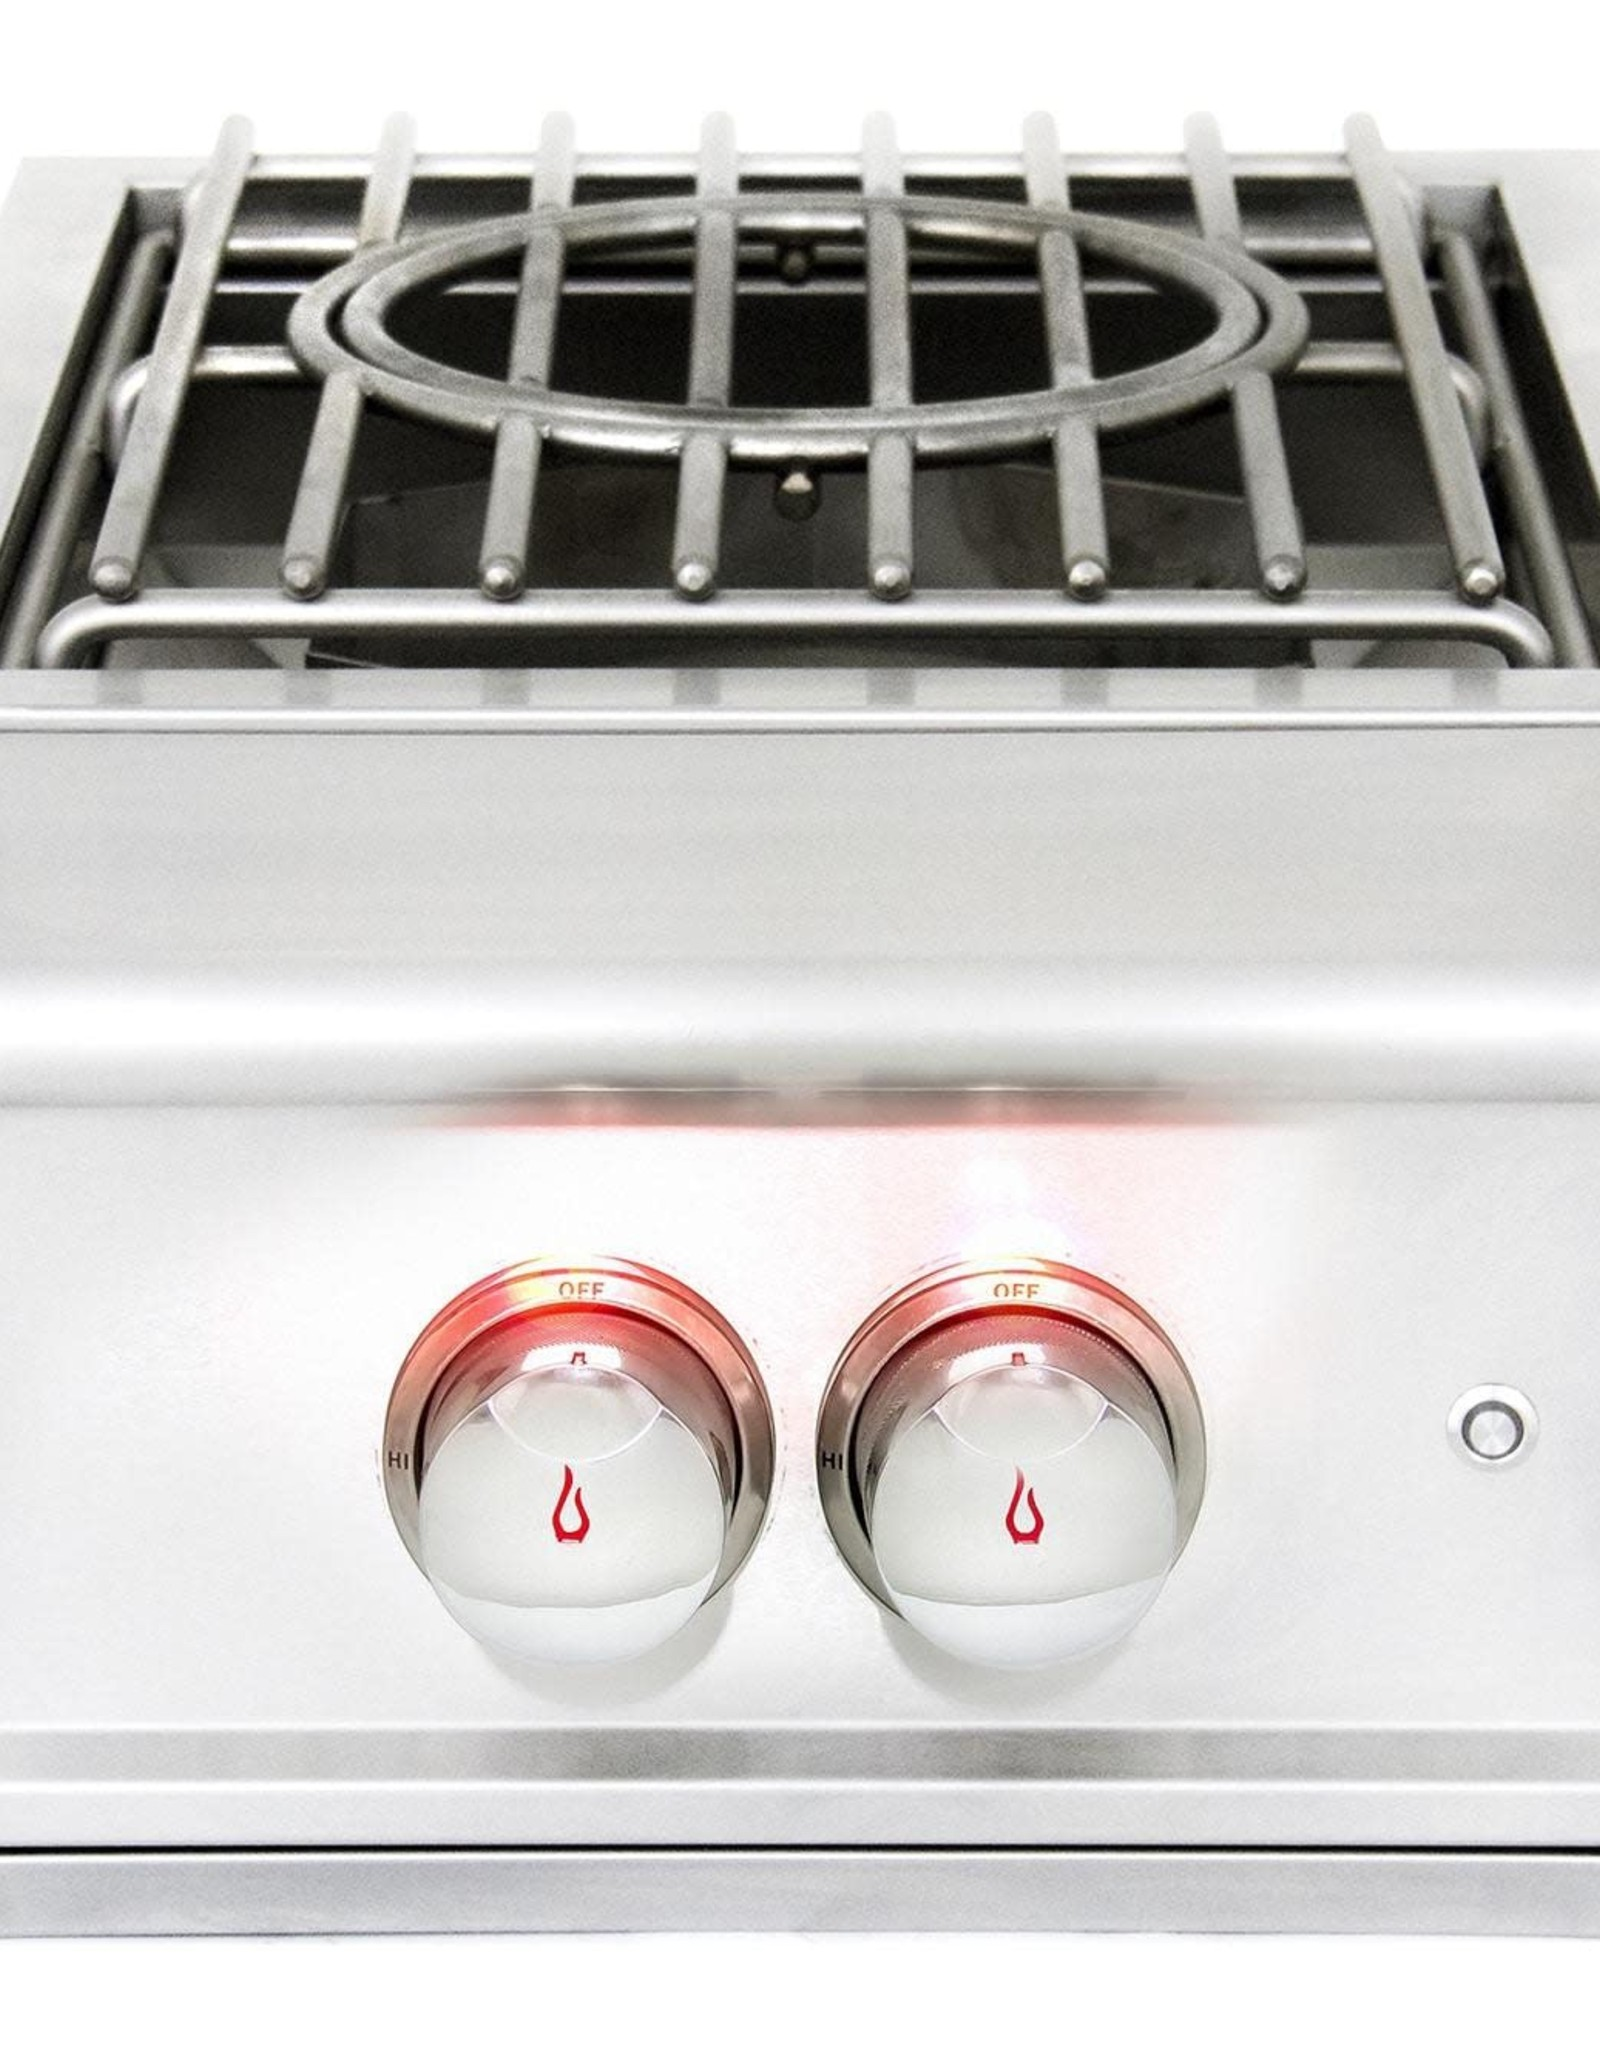 Blaze Outdoor Products Blaze Professional Built-In High Performance Power Burner BLZ-PROPB-NG